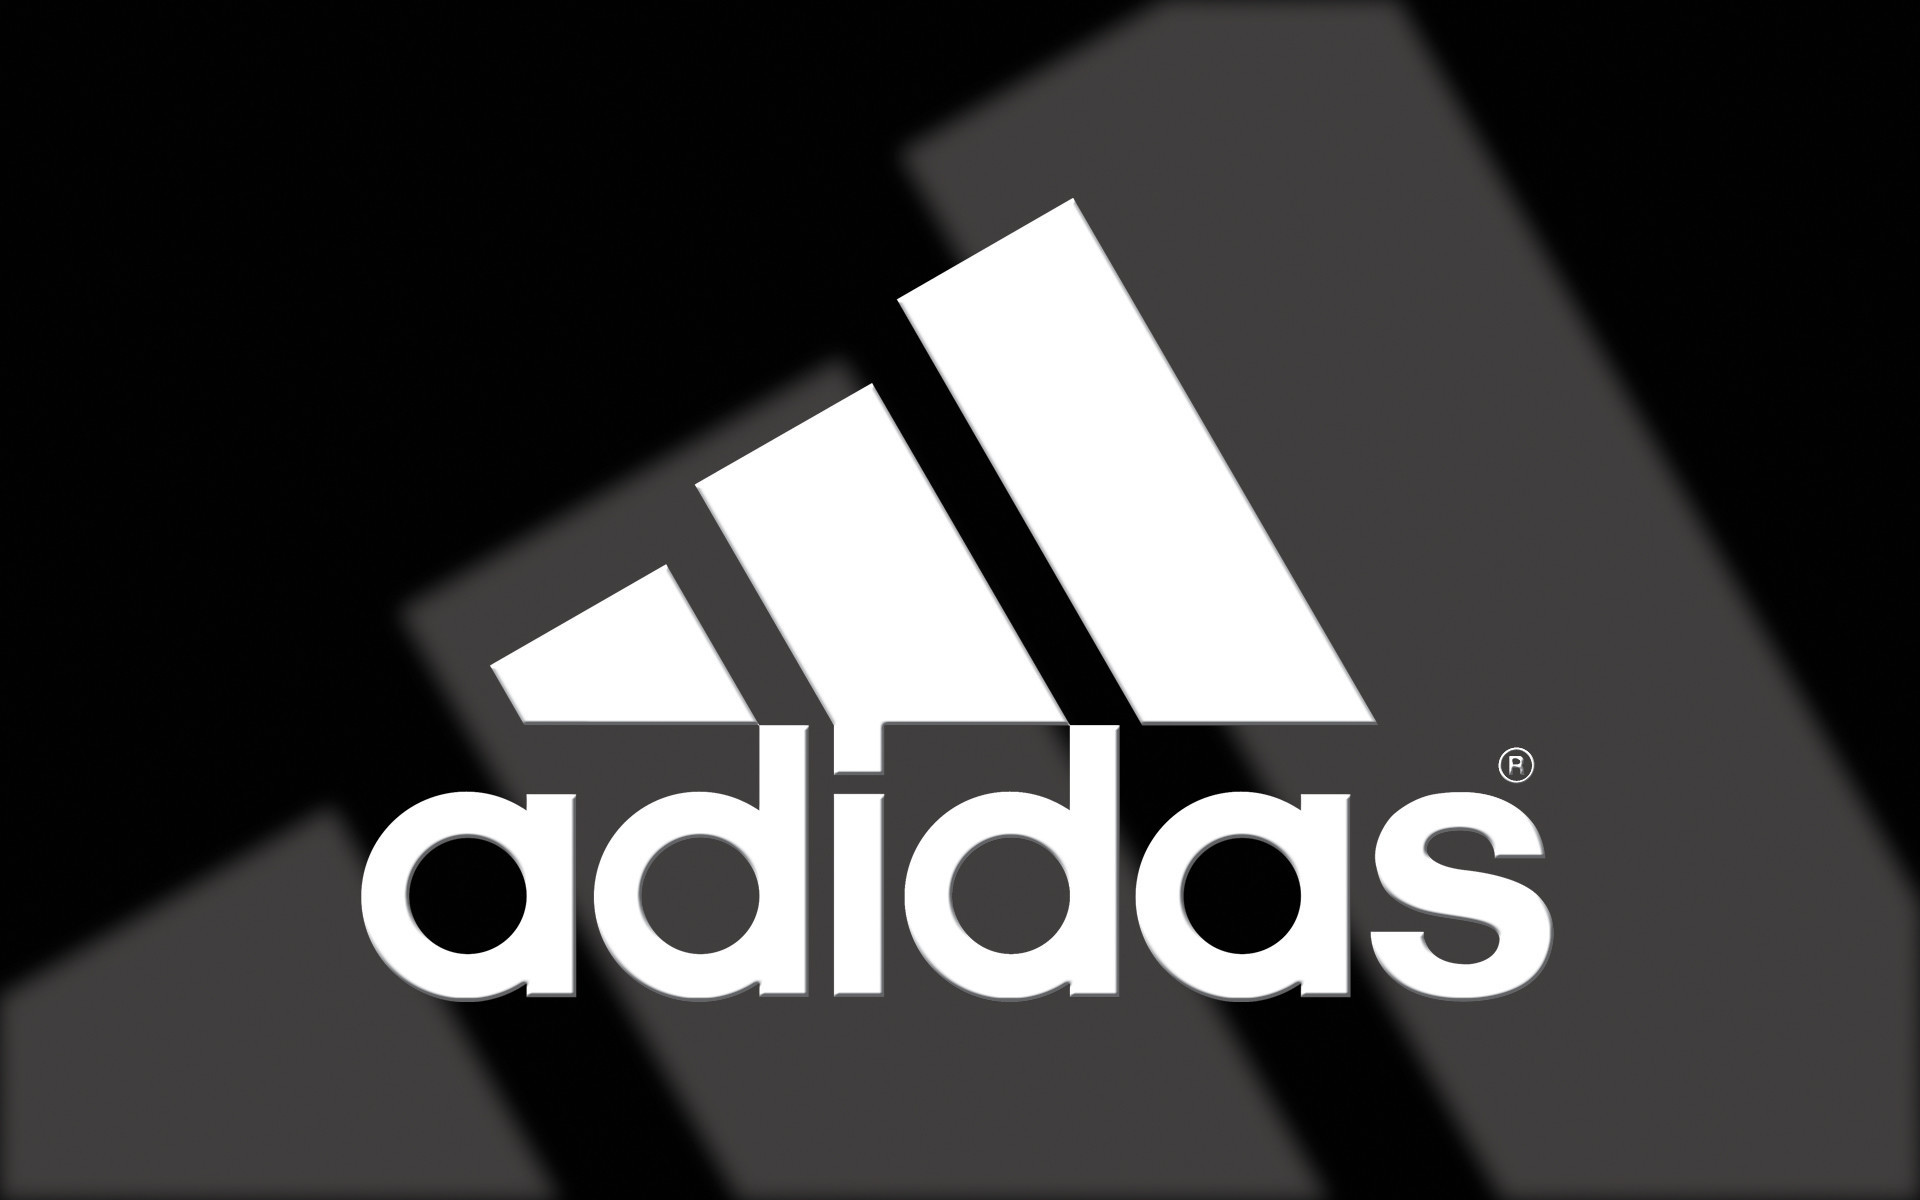 1920x1200 1920x1200 Bild: Adidas wallpapers and stock photos. Ã'Â«